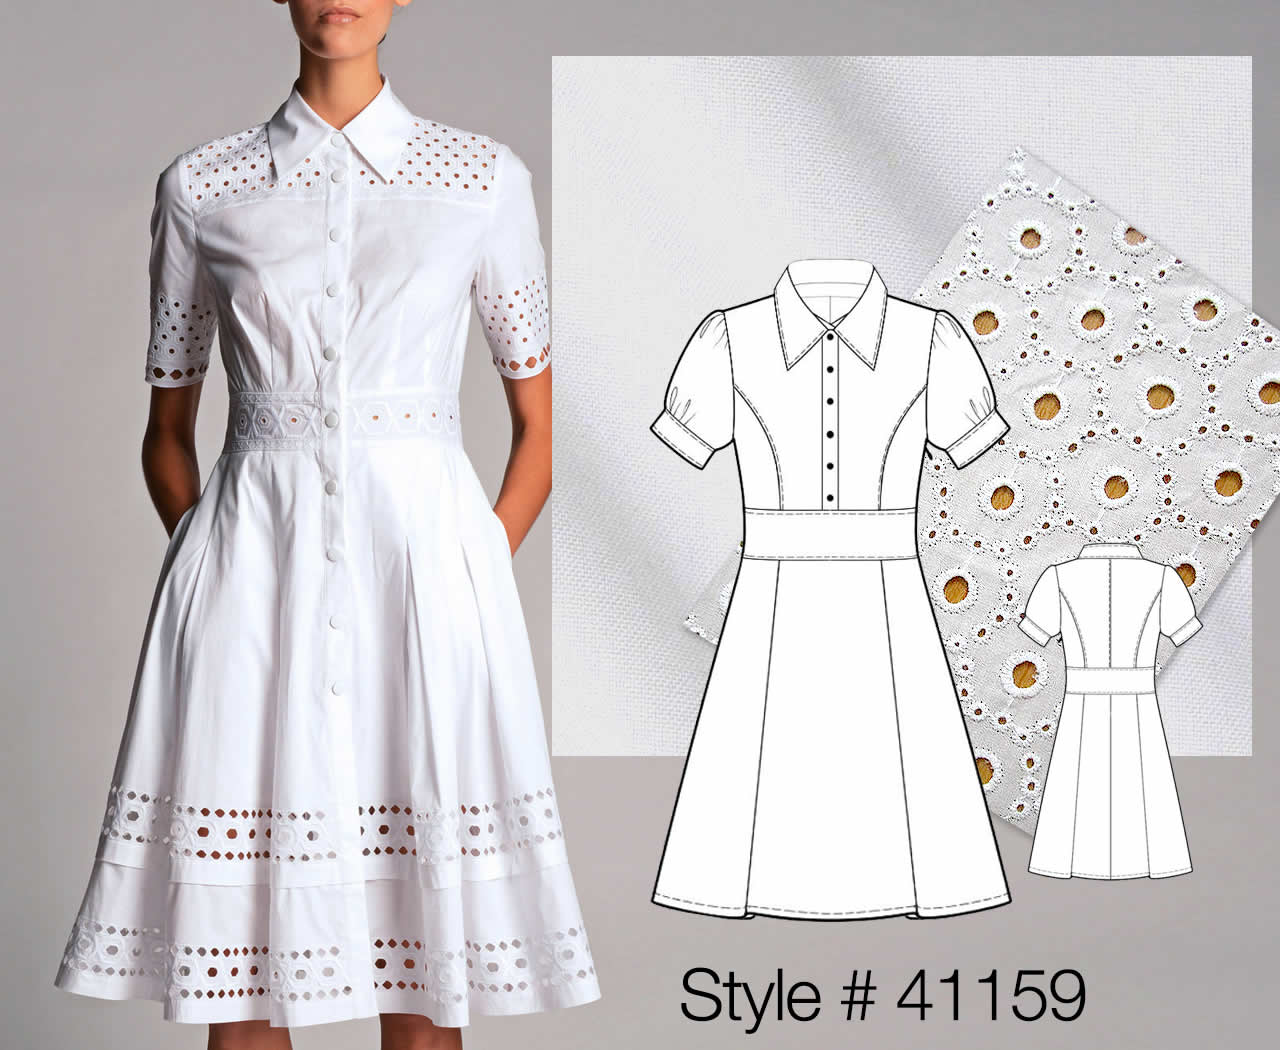 Online Clothes Pattern Maker